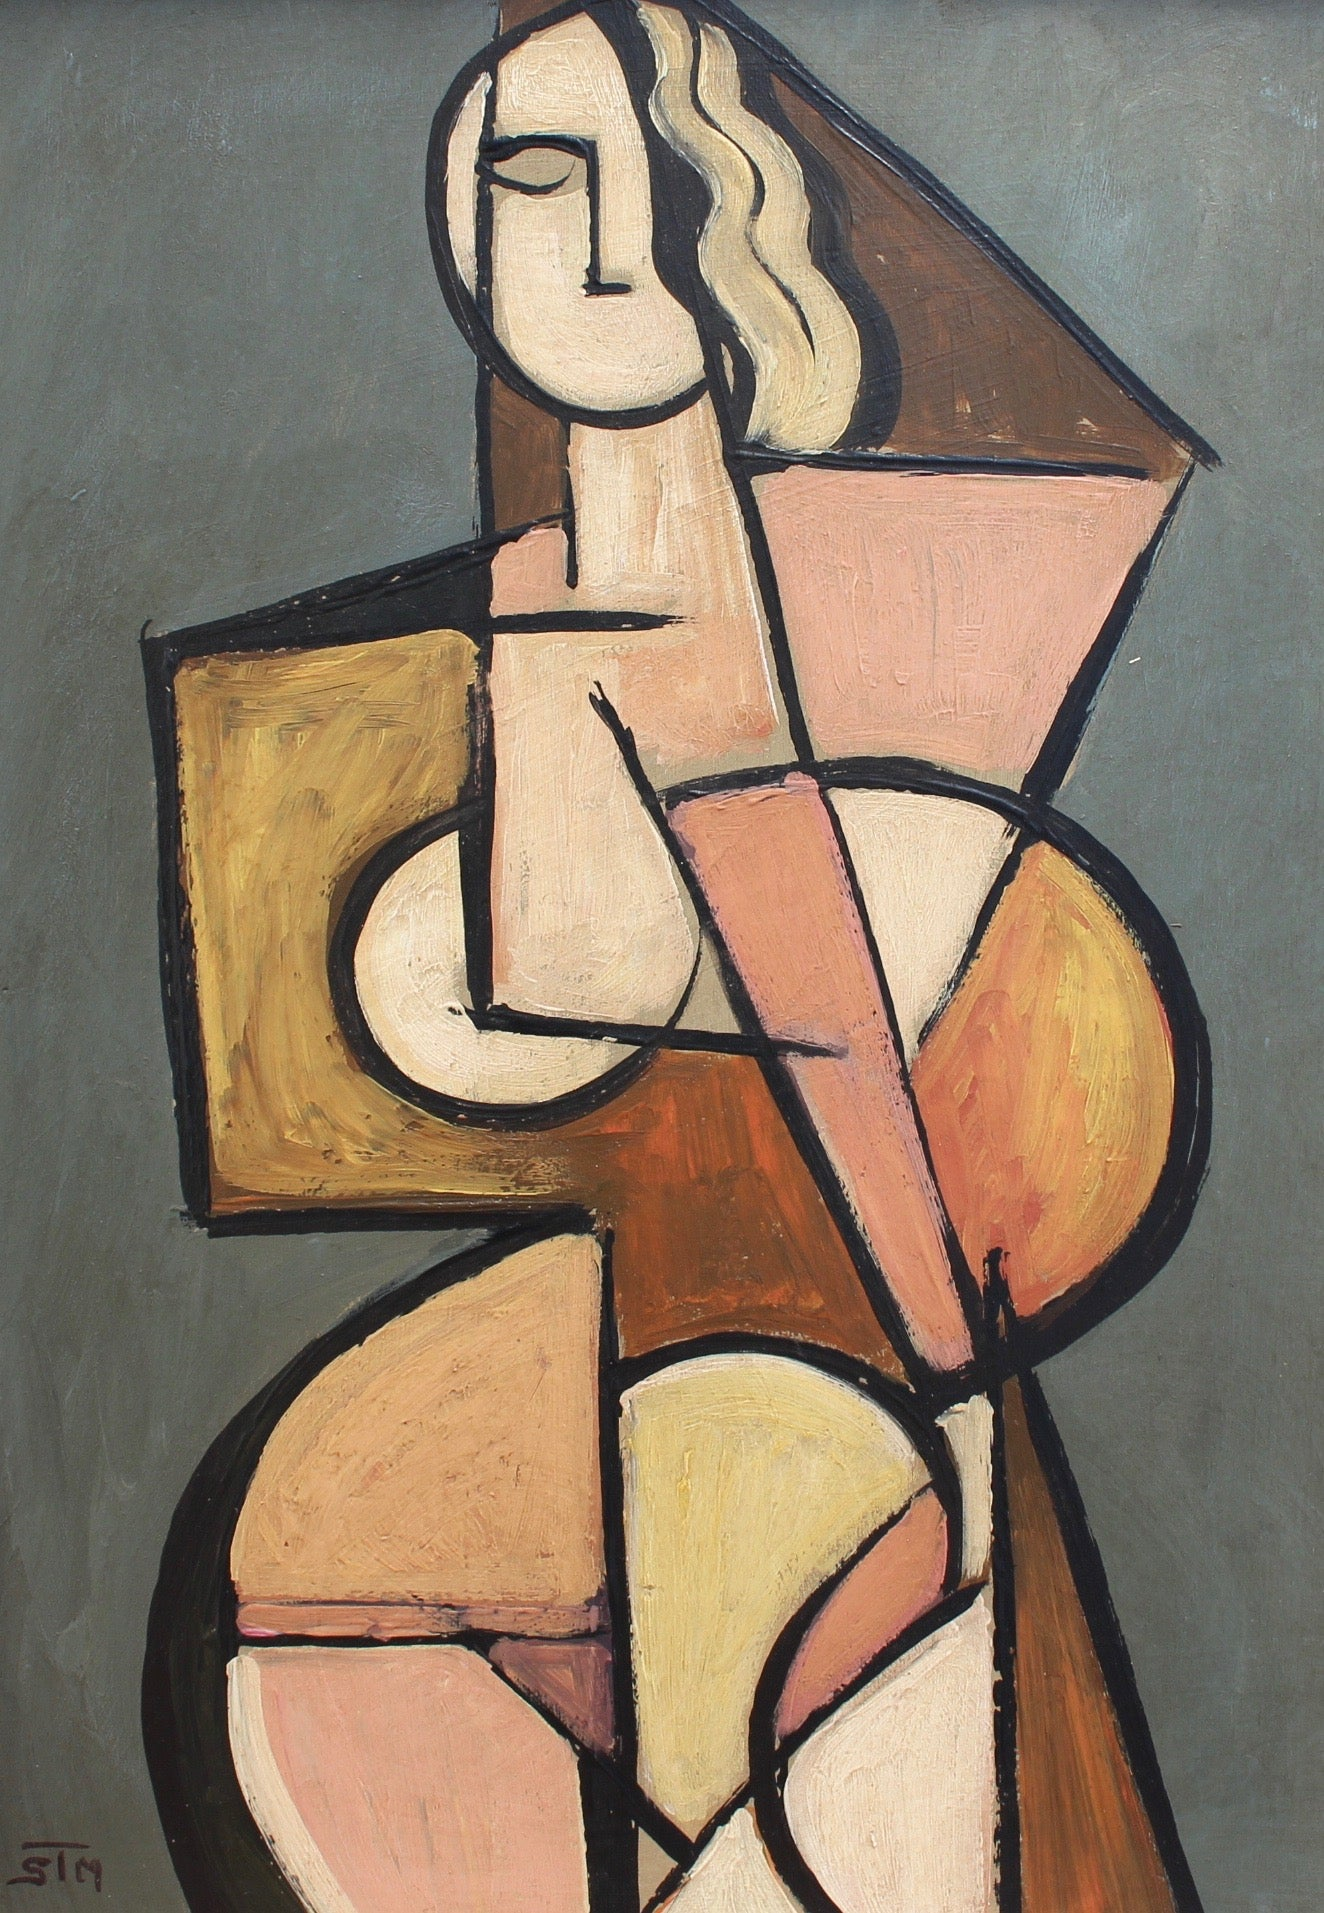 'Classical Nude' by STM (circa 1950s - 1970s)